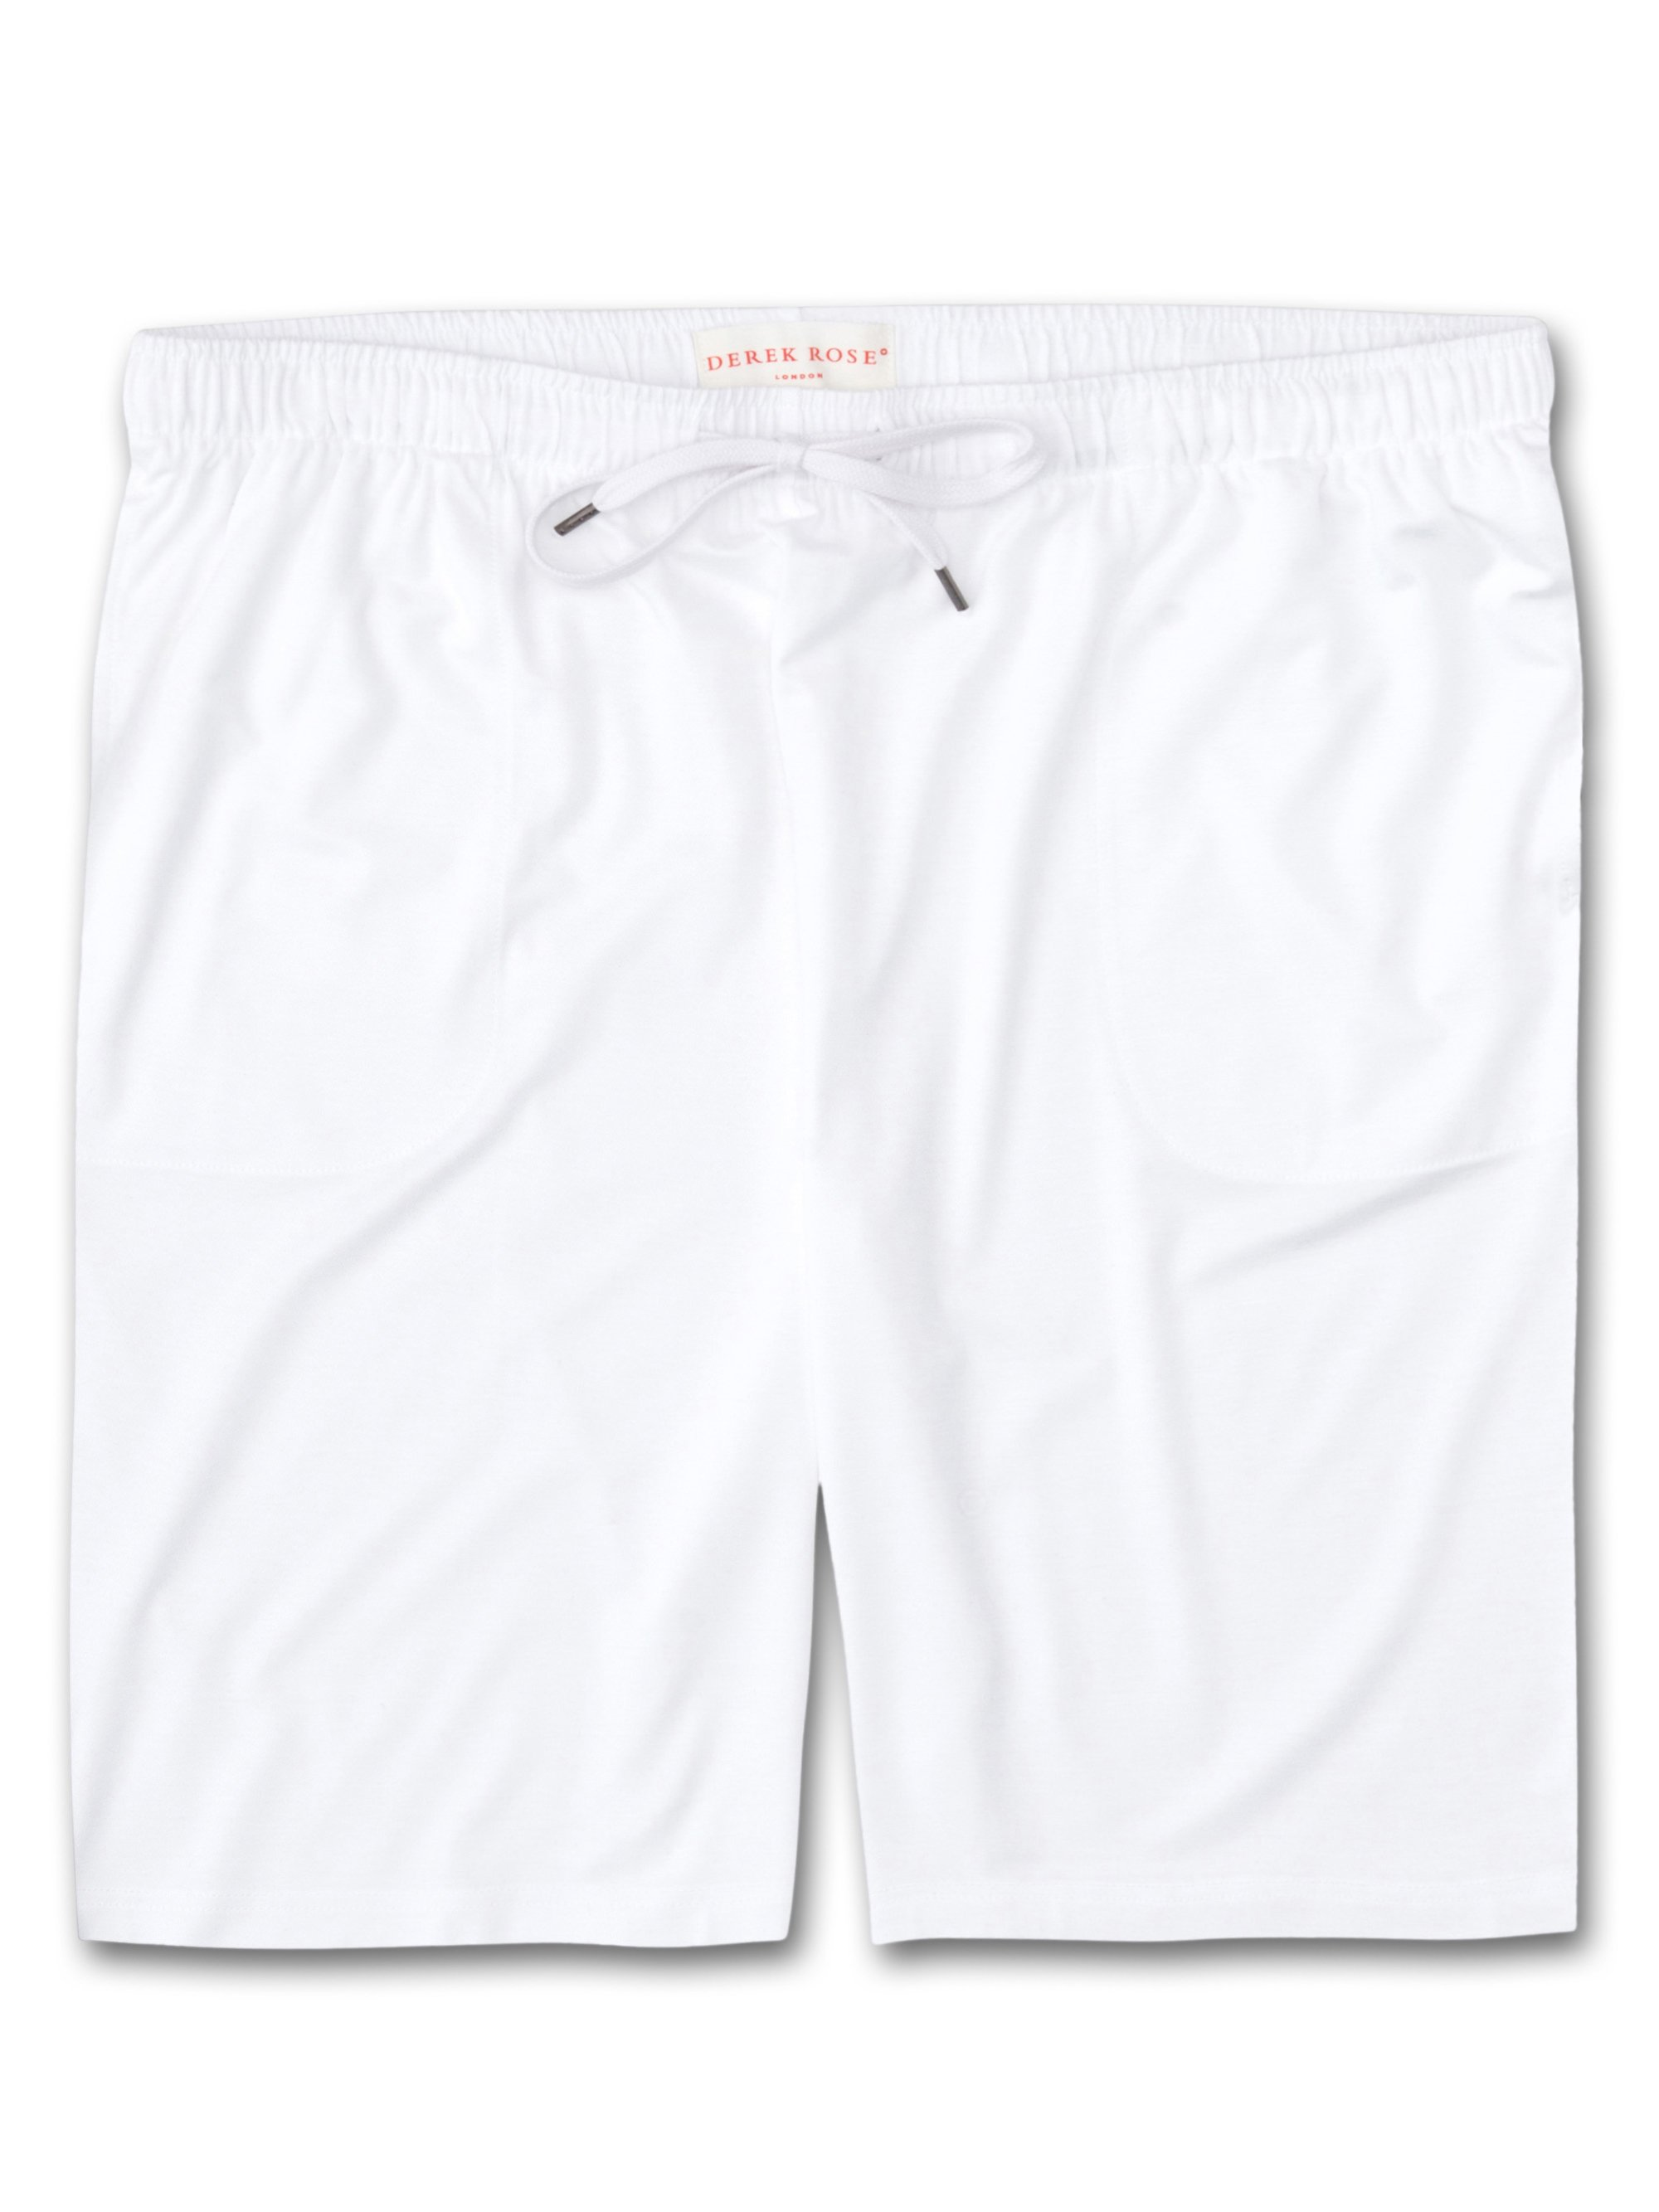 Men's Jersey Shorts Basel Micro Modal Stretch White